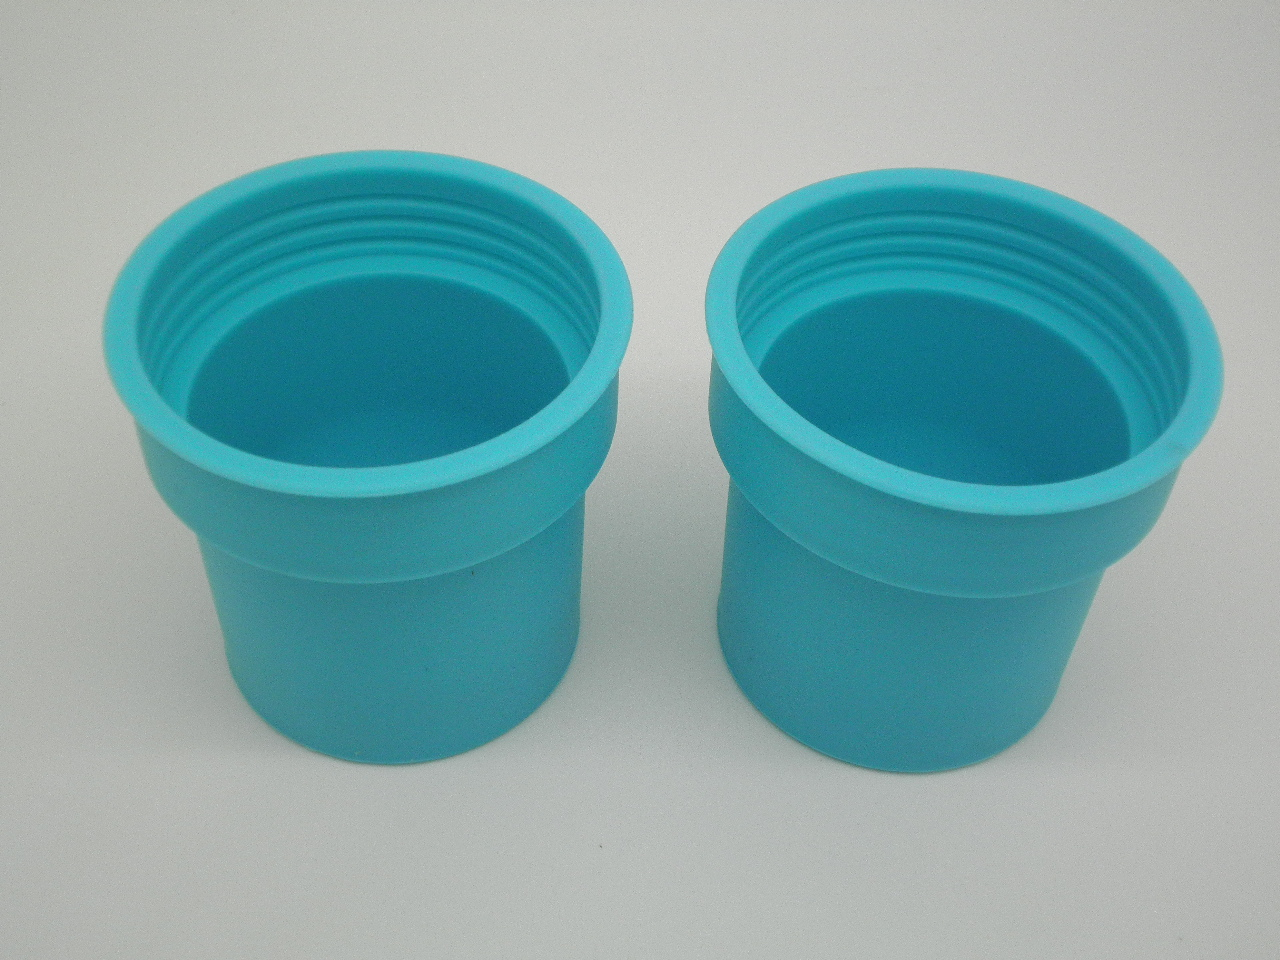 http://www.refinehksilicone.cn/data/images/product/20180417101021_381.JPG